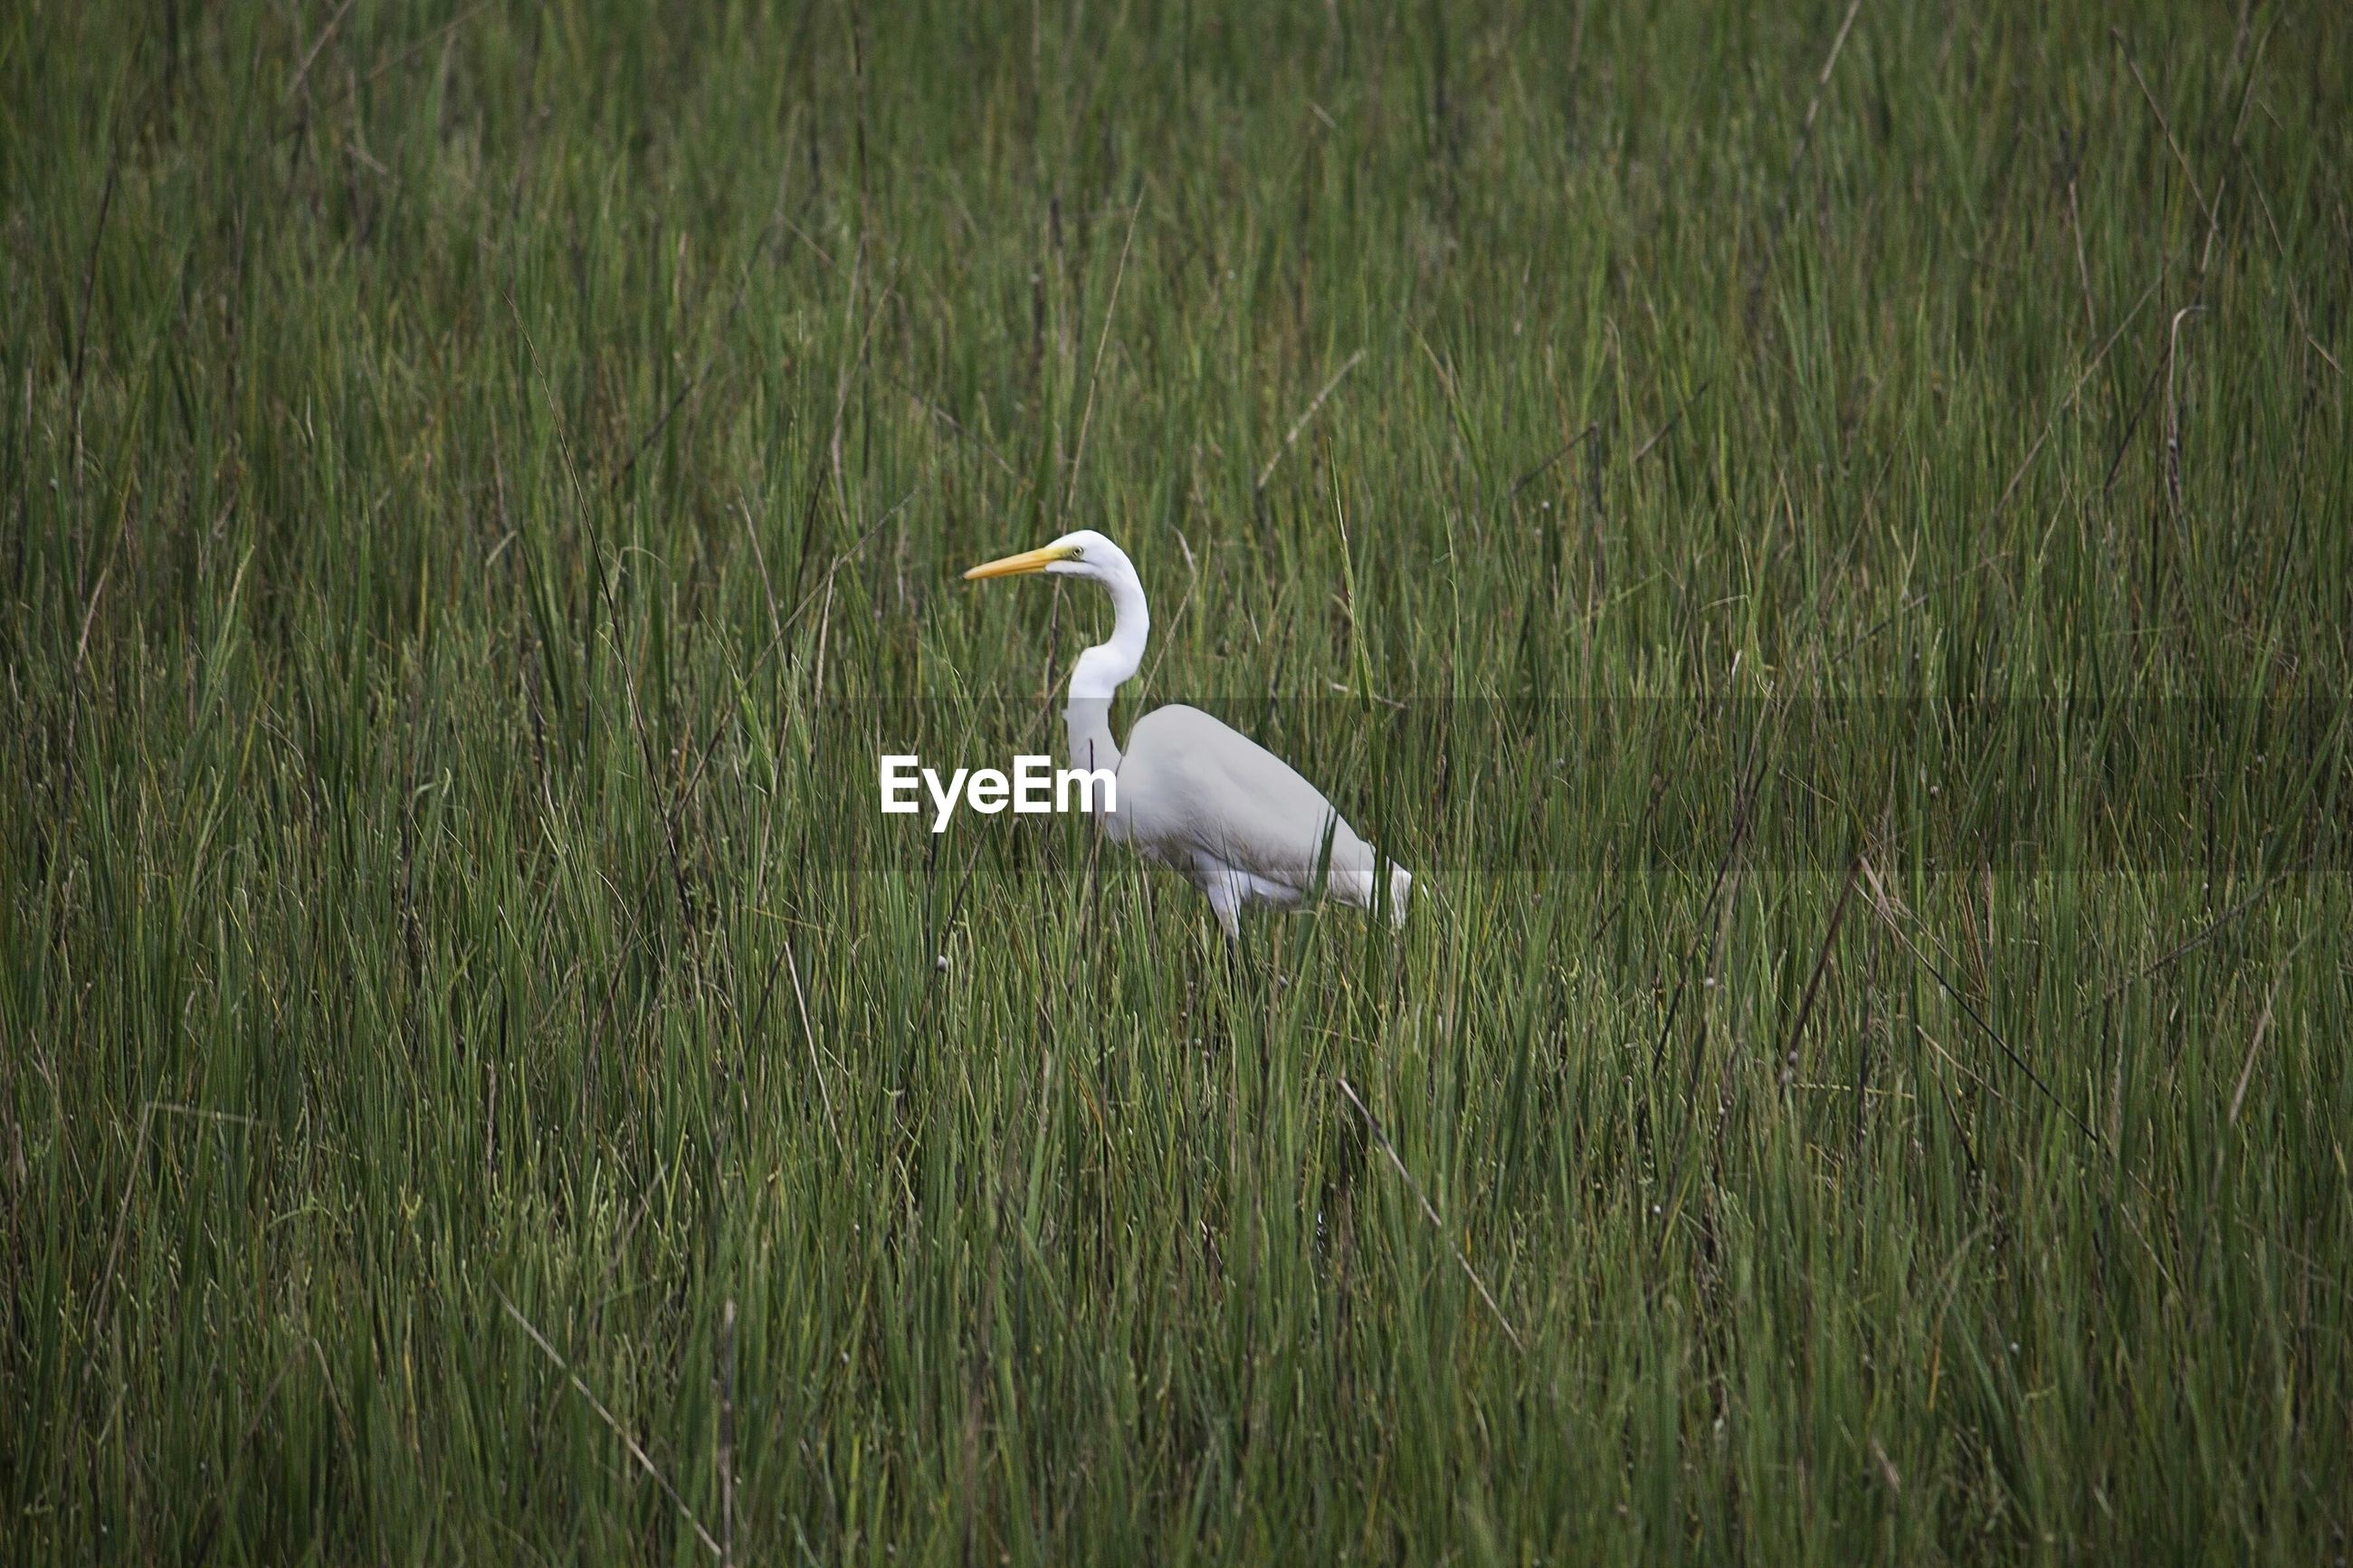 bird, animals in the wild, animal themes, wildlife, grass, one animal, nature, side view, field, beak, lake, green color, beauty in nature, heron, full length, outdoors, plant, day, no people, growth